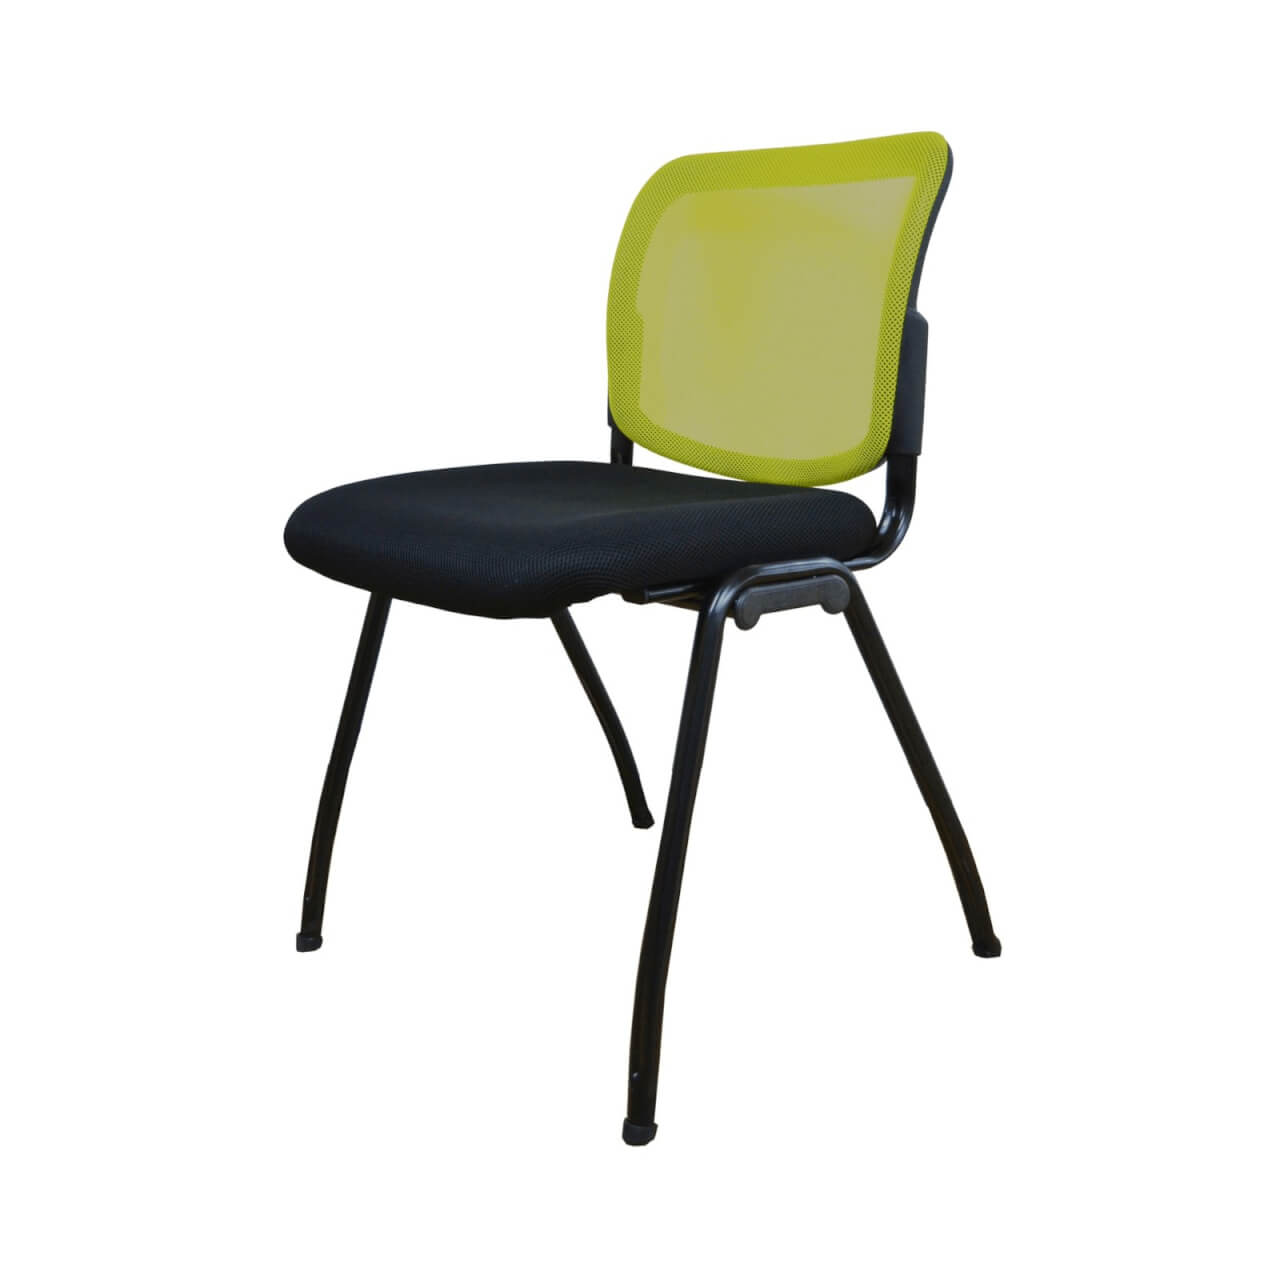 deluxe-vc-meshback-chair-yellow